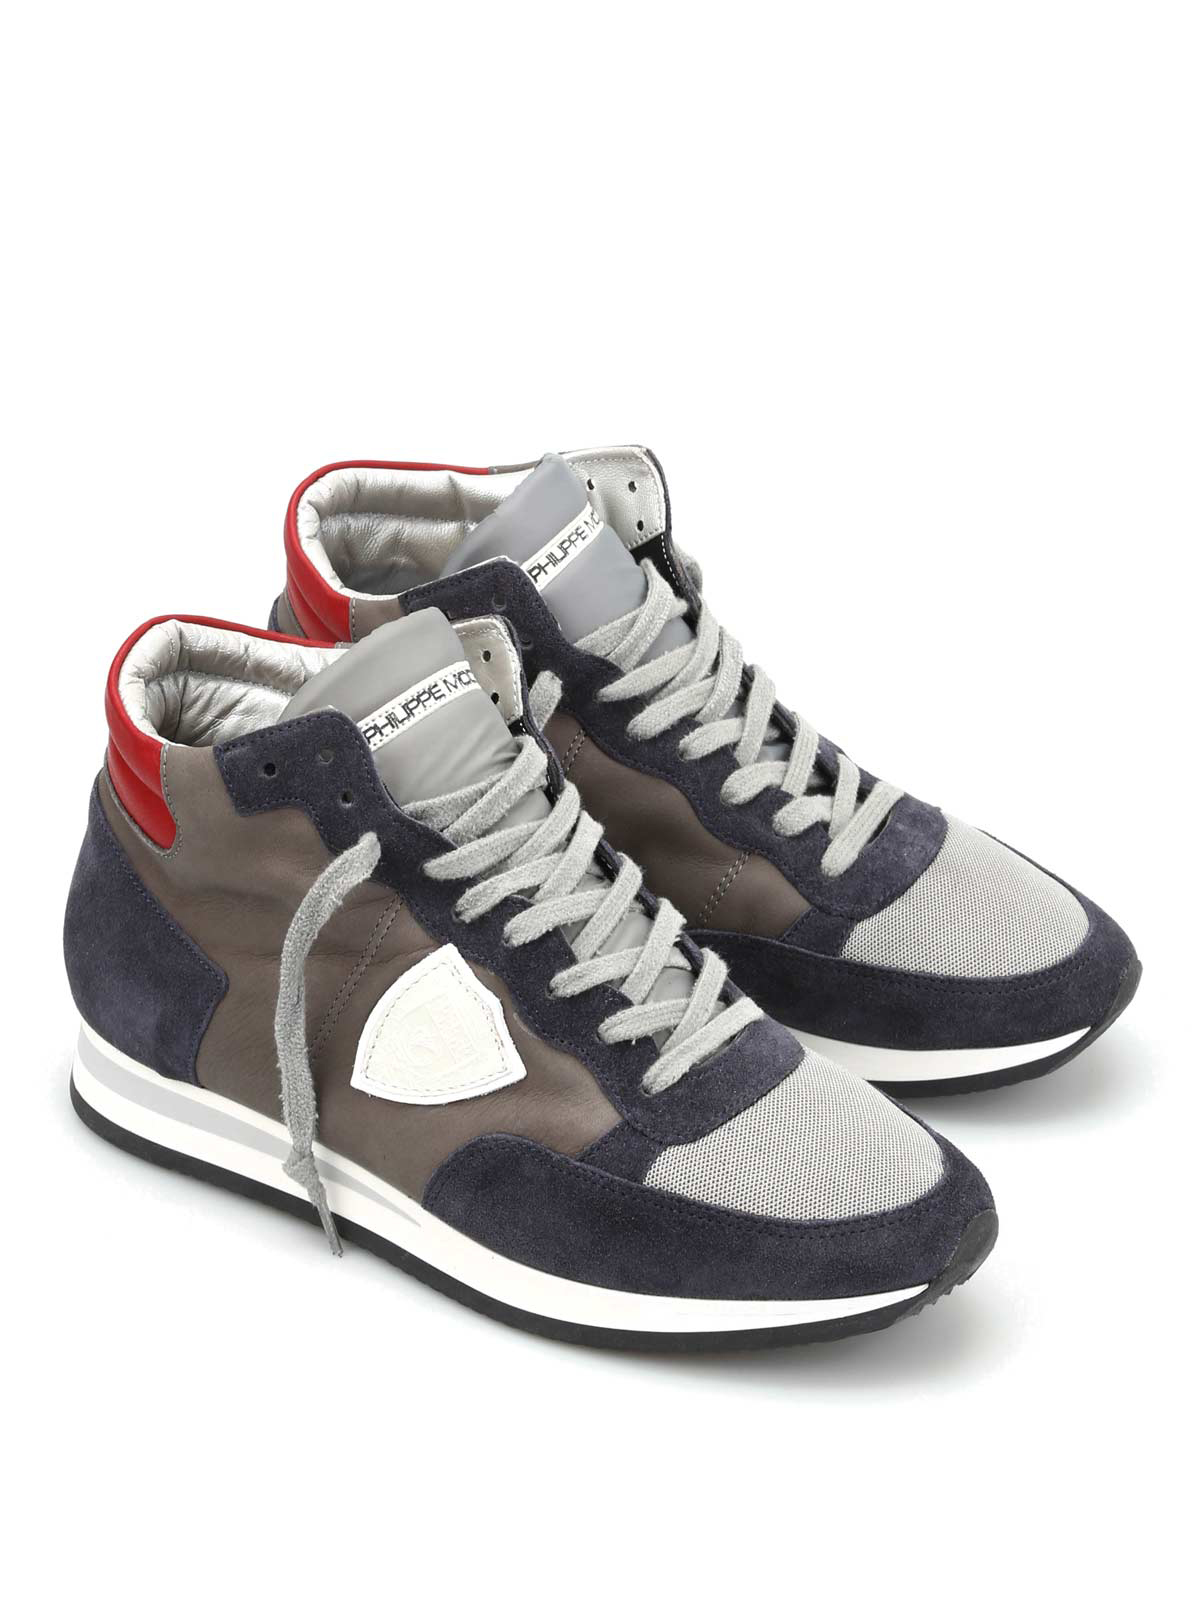 Tropez Higher shoes Philippe Model HnlQ0N